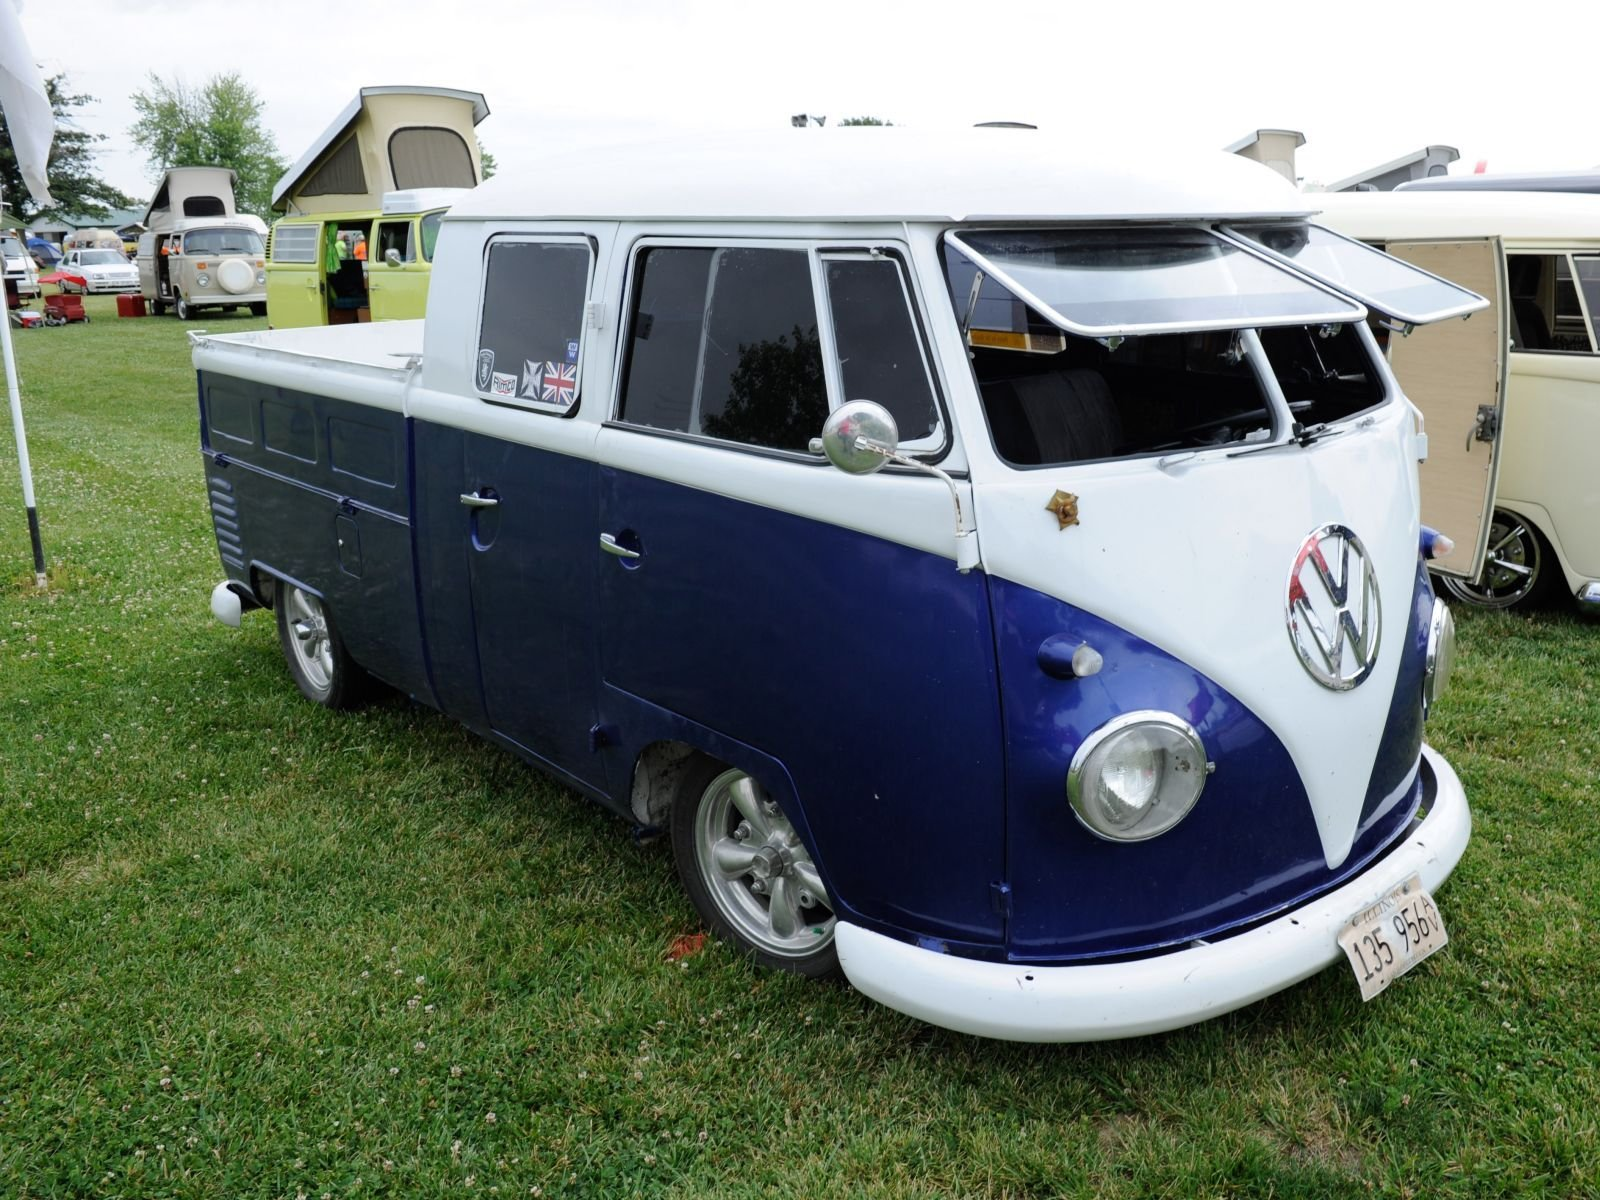 Funfest For Air Cooled Vw 2012 Pickup Photo 101 1600x1200